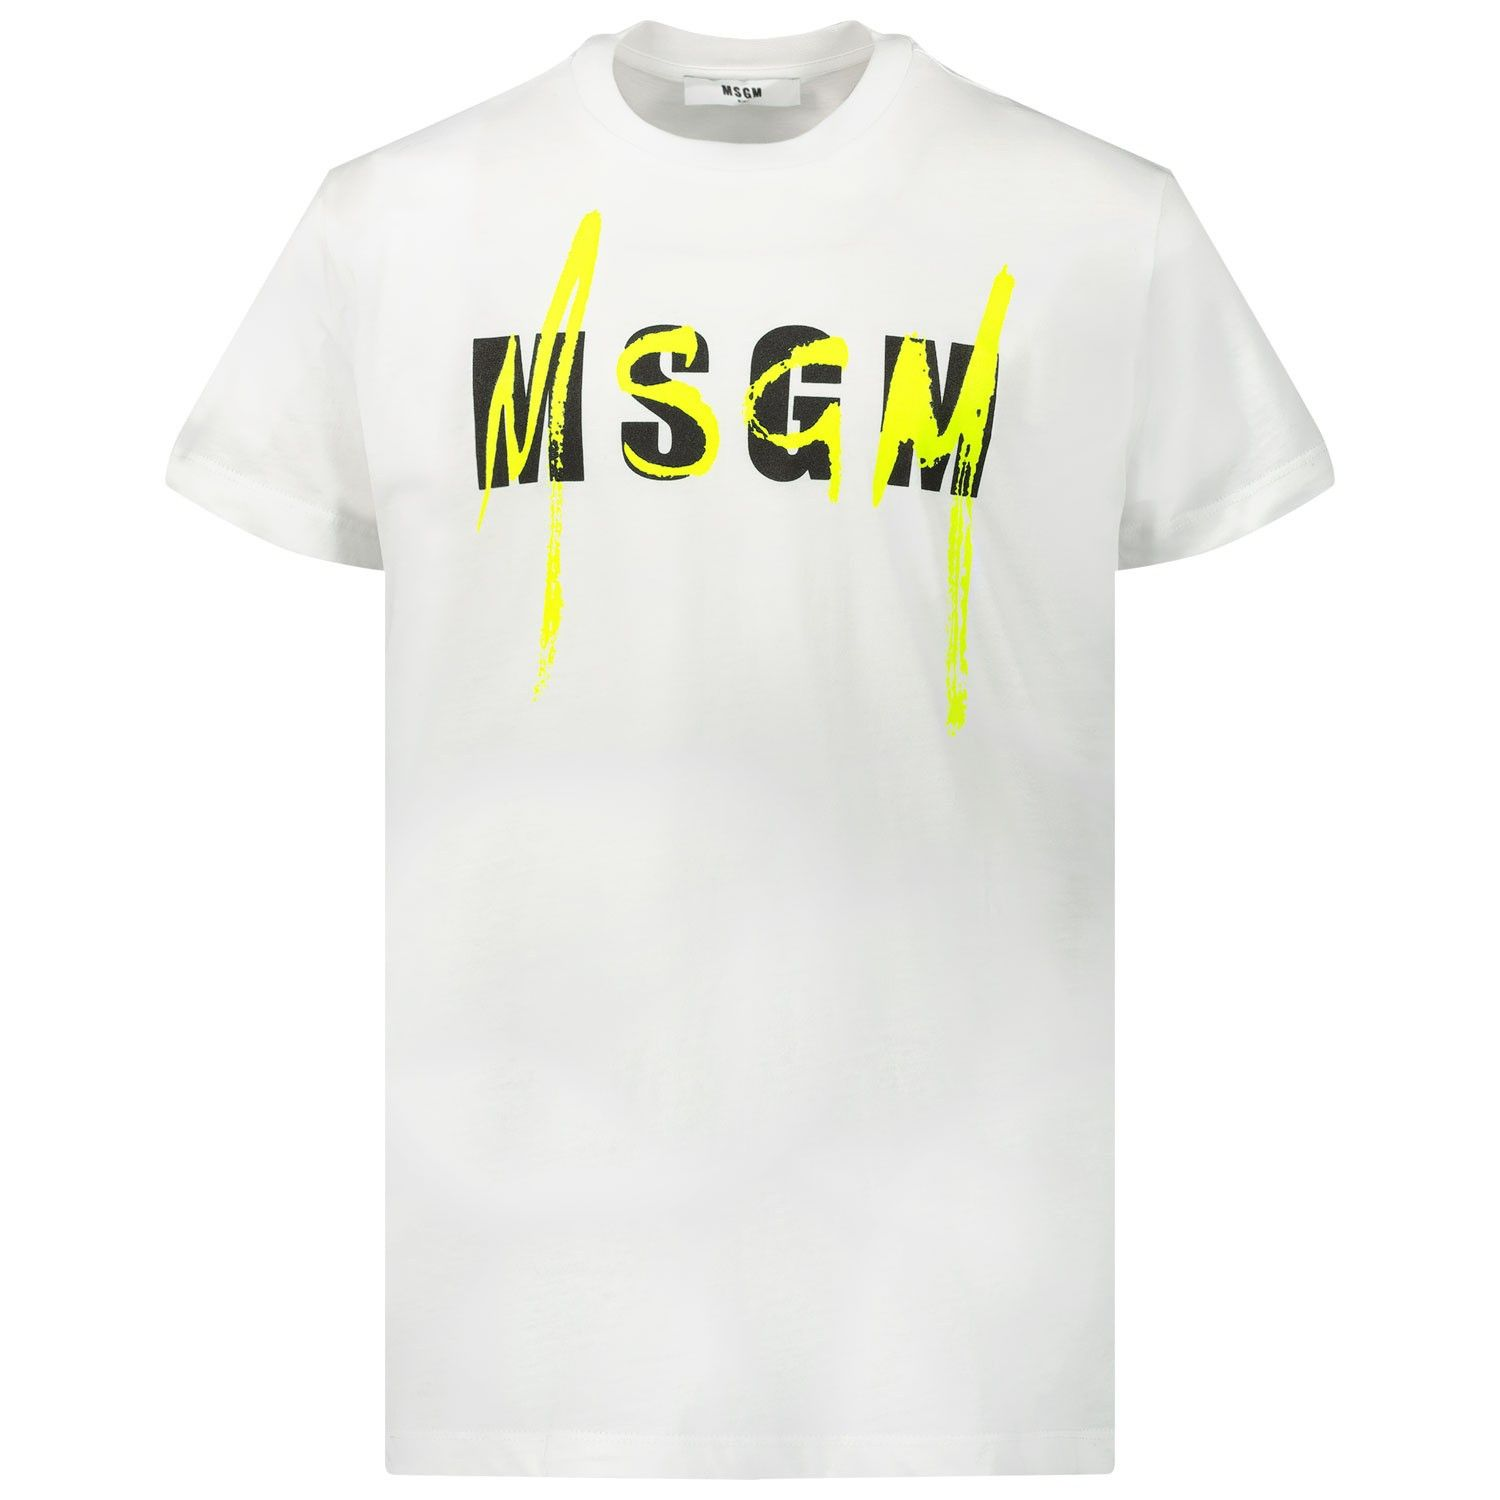 Picture of MSGM 22088 kids t-shirt white